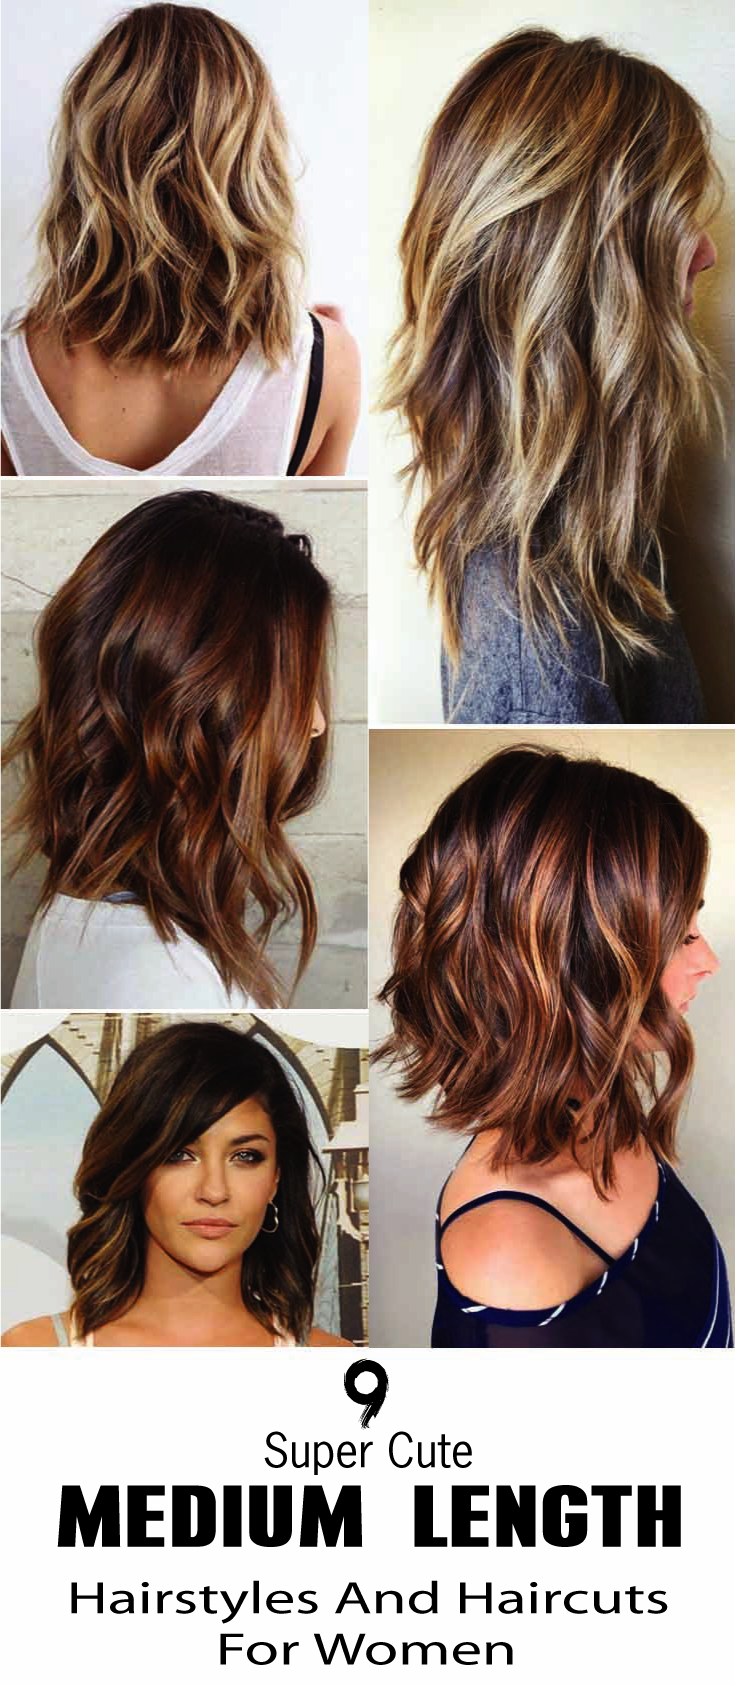 Here Are 9 Super Cute Medium Length Hairstyles And Haircuts For Women No Matter How You We Medium Length Hair Styles Hair Styles Cute Medium Length Hairstyles